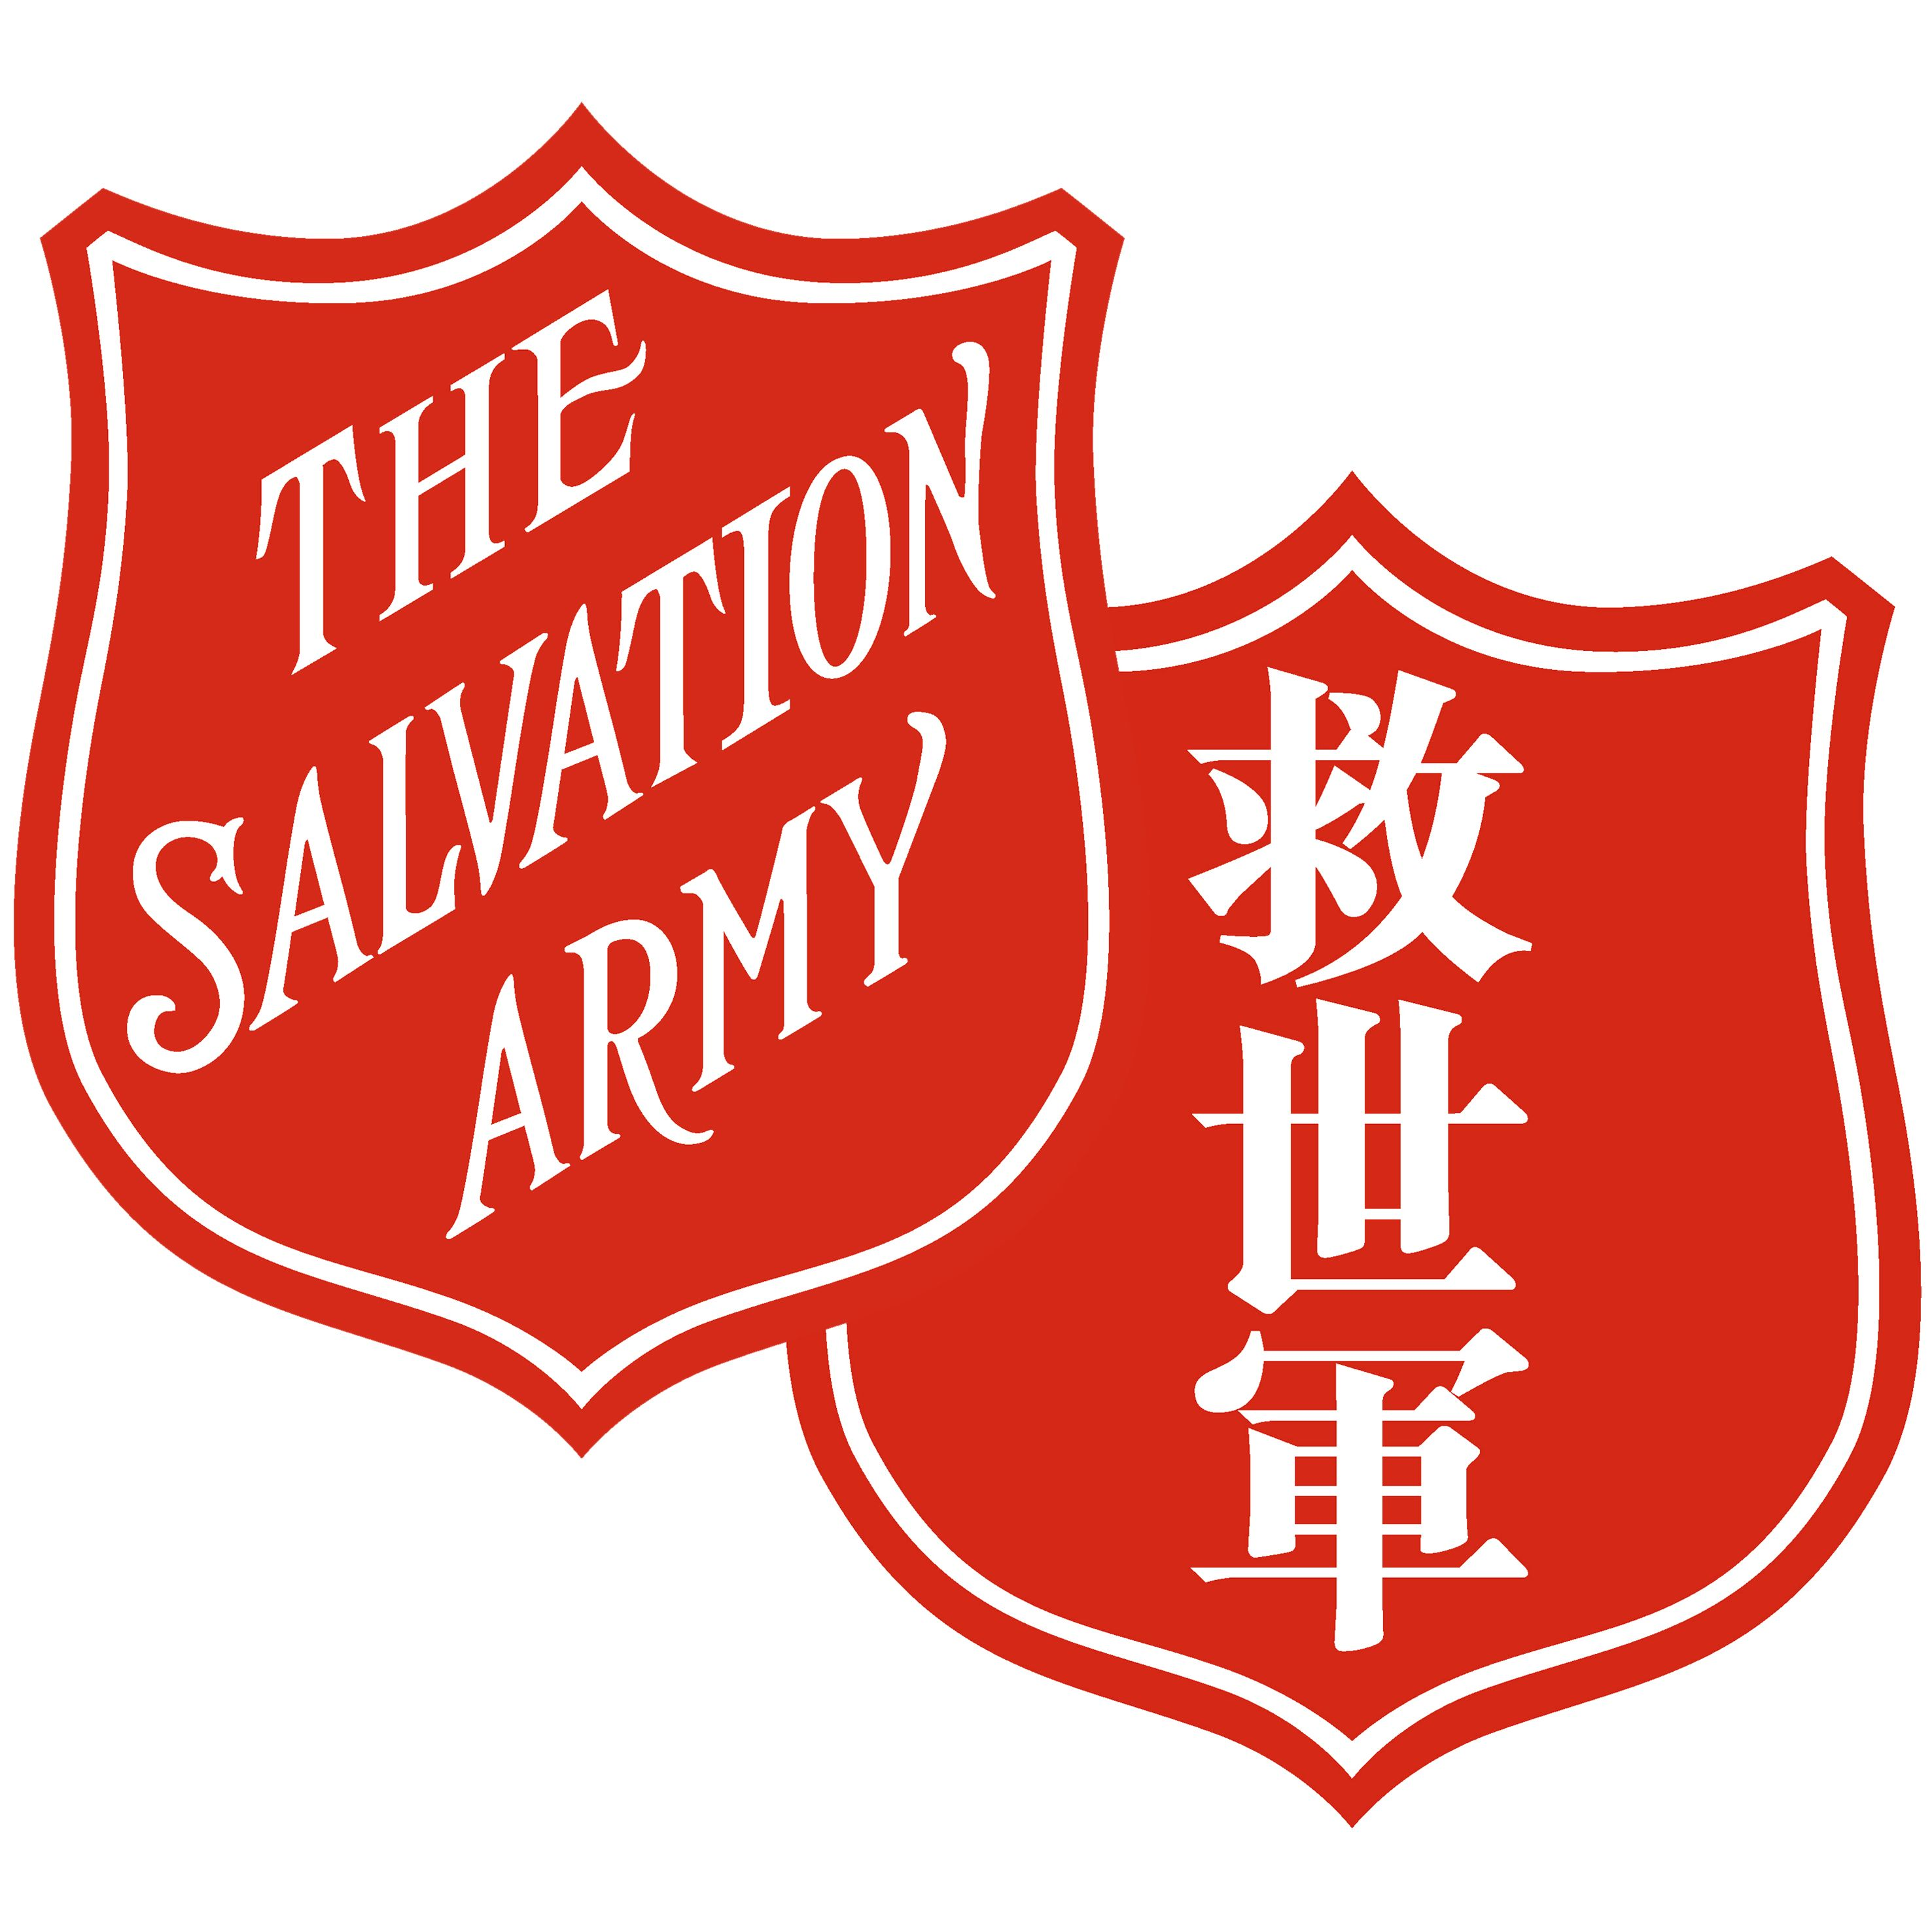 The logo is linked to the salvation army world website the red the logo is linked to the salvation army world website the red shield is an internationally recognized symbol of salvation army service to those i biocorpaavc Choice Image